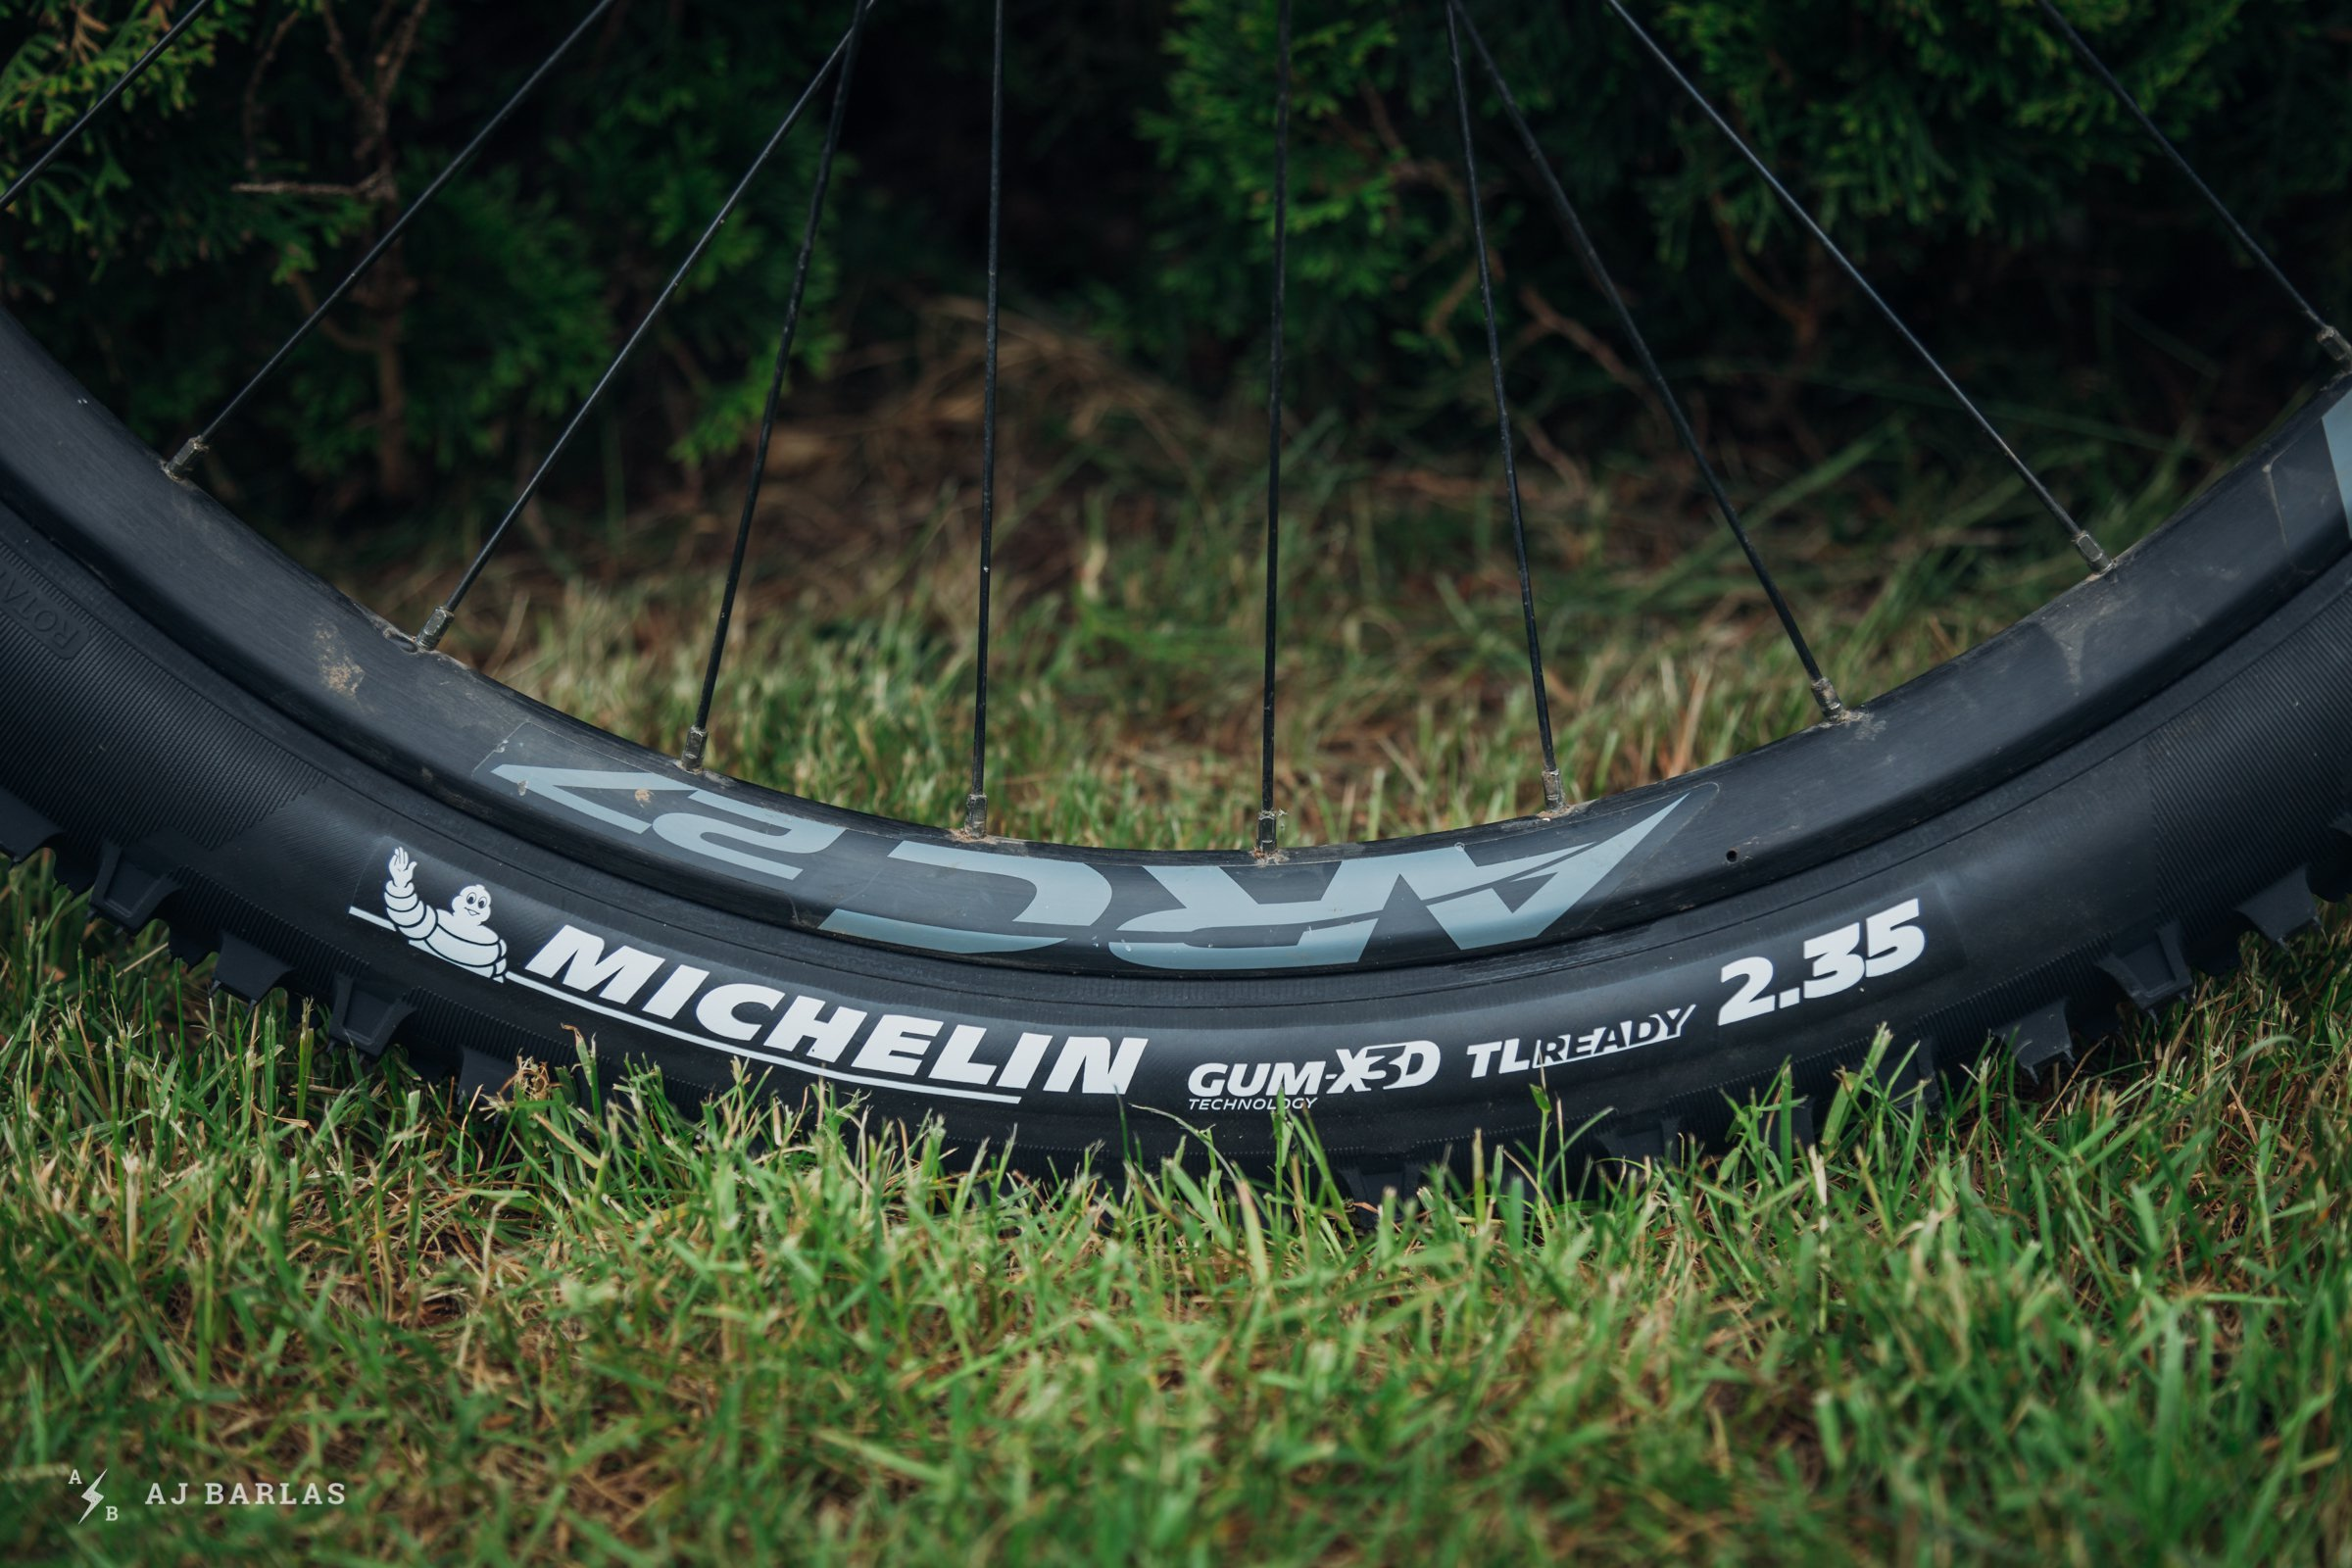 michelin-wild-am-tire-210518-ajbarlas-7129.jpg